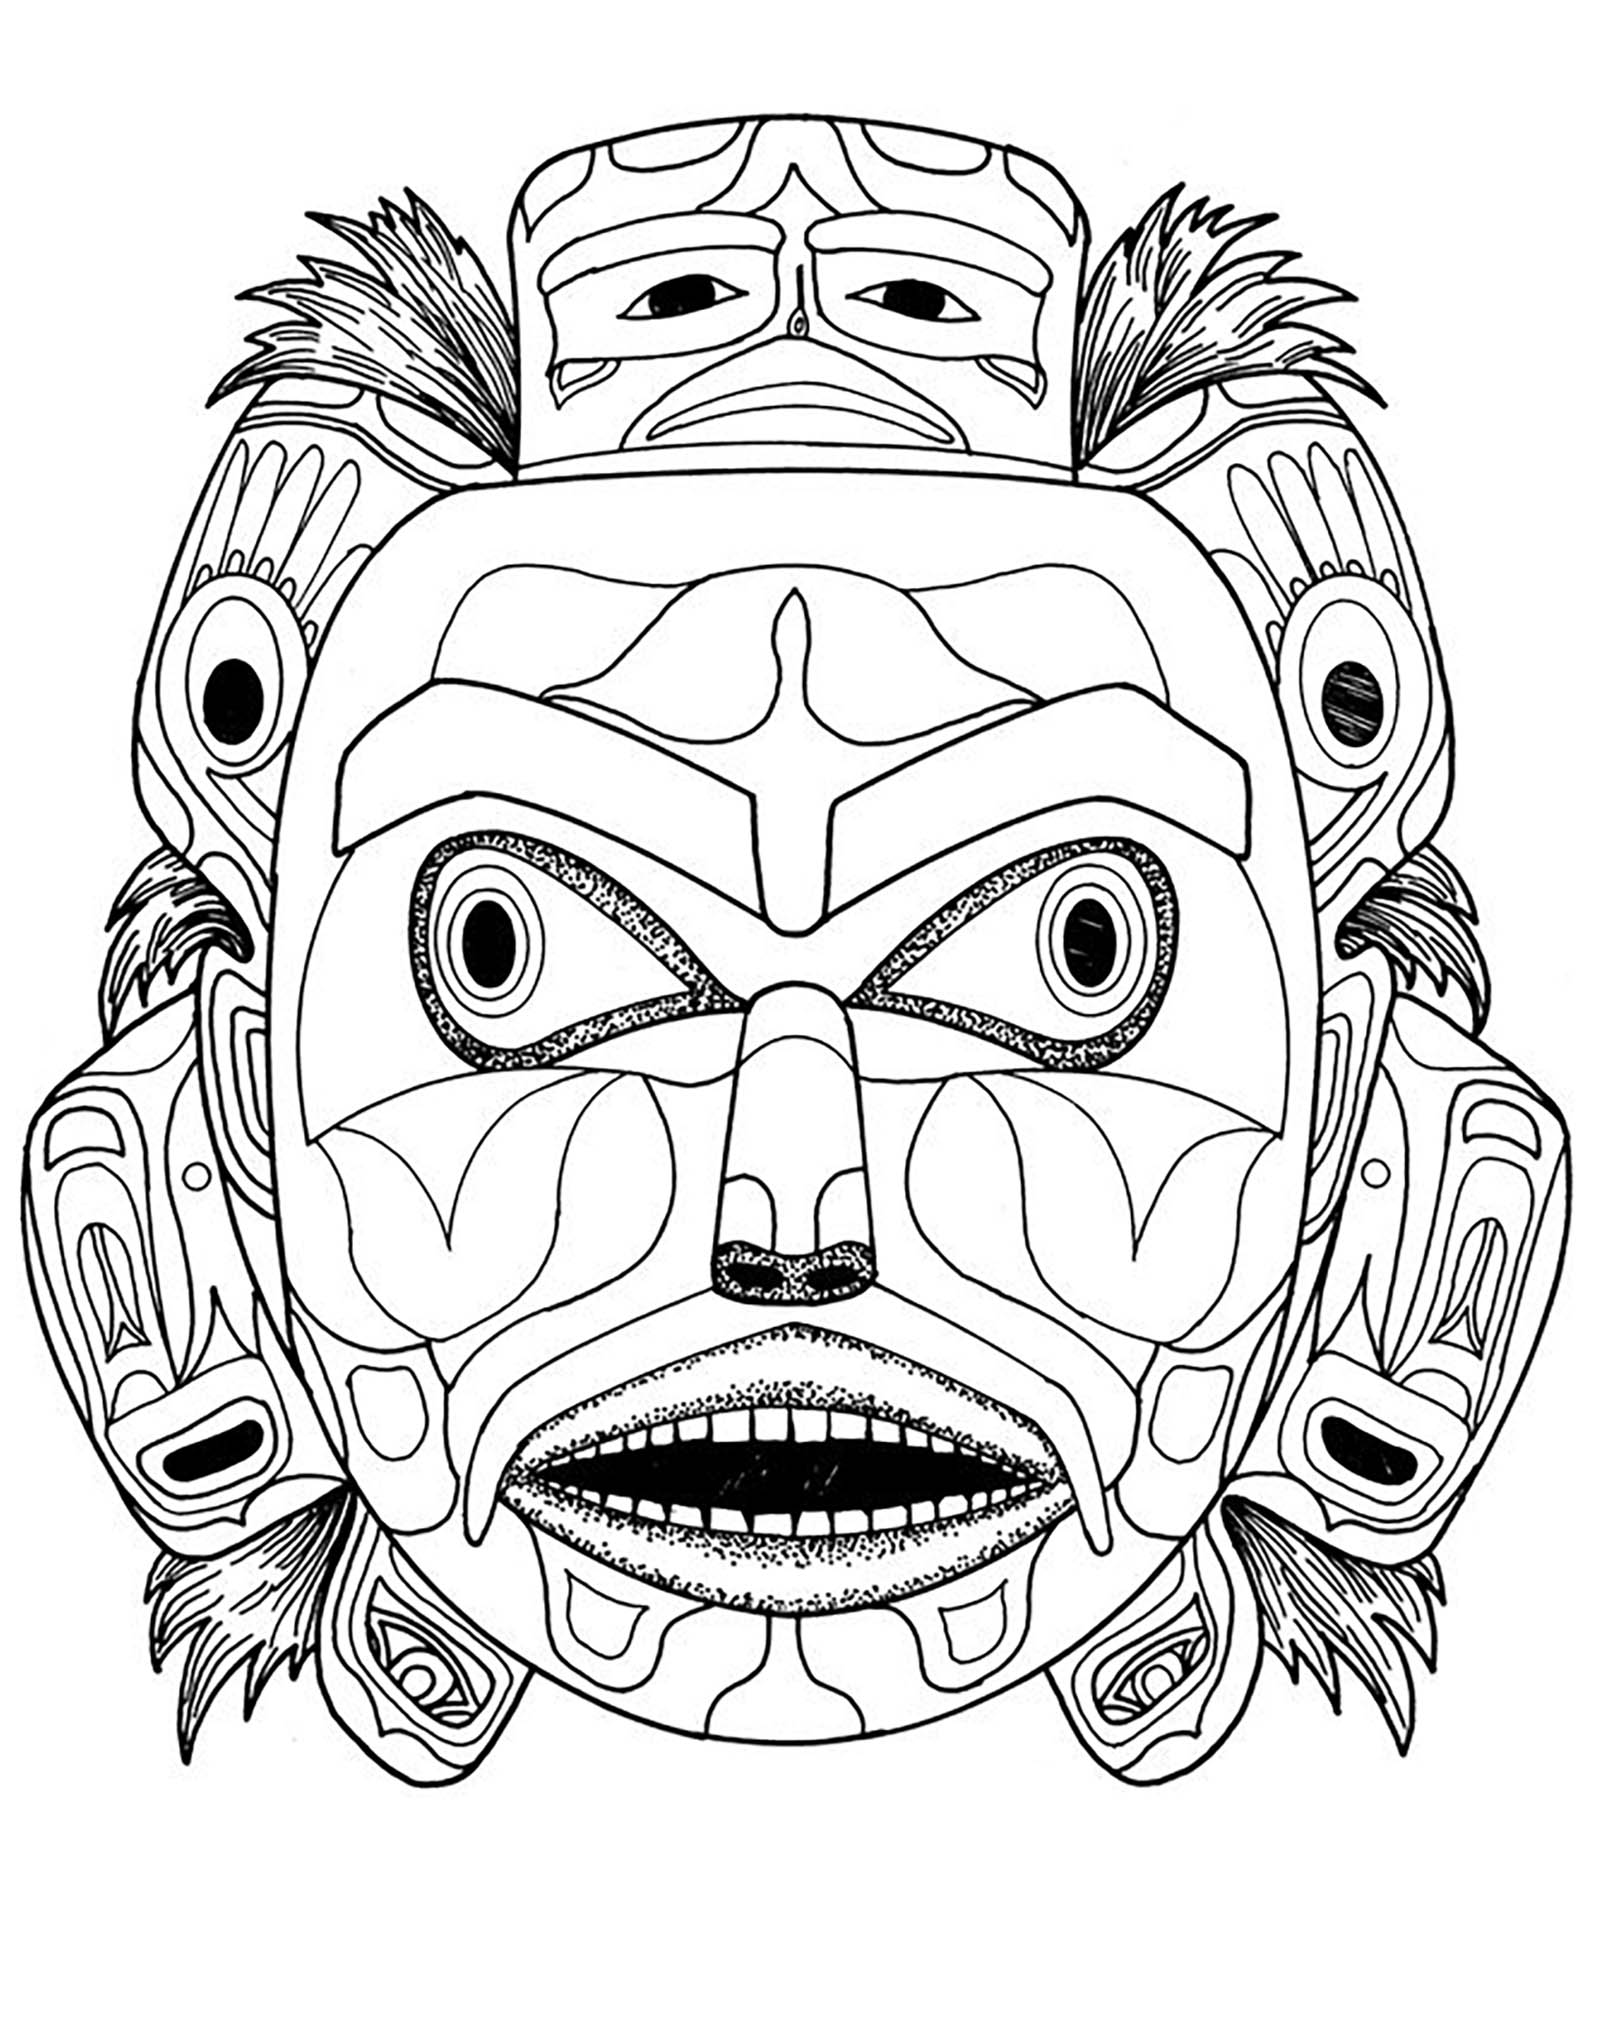 native american colouring sheets native american coloring pages to download and print for free native american colouring sheets 1 1